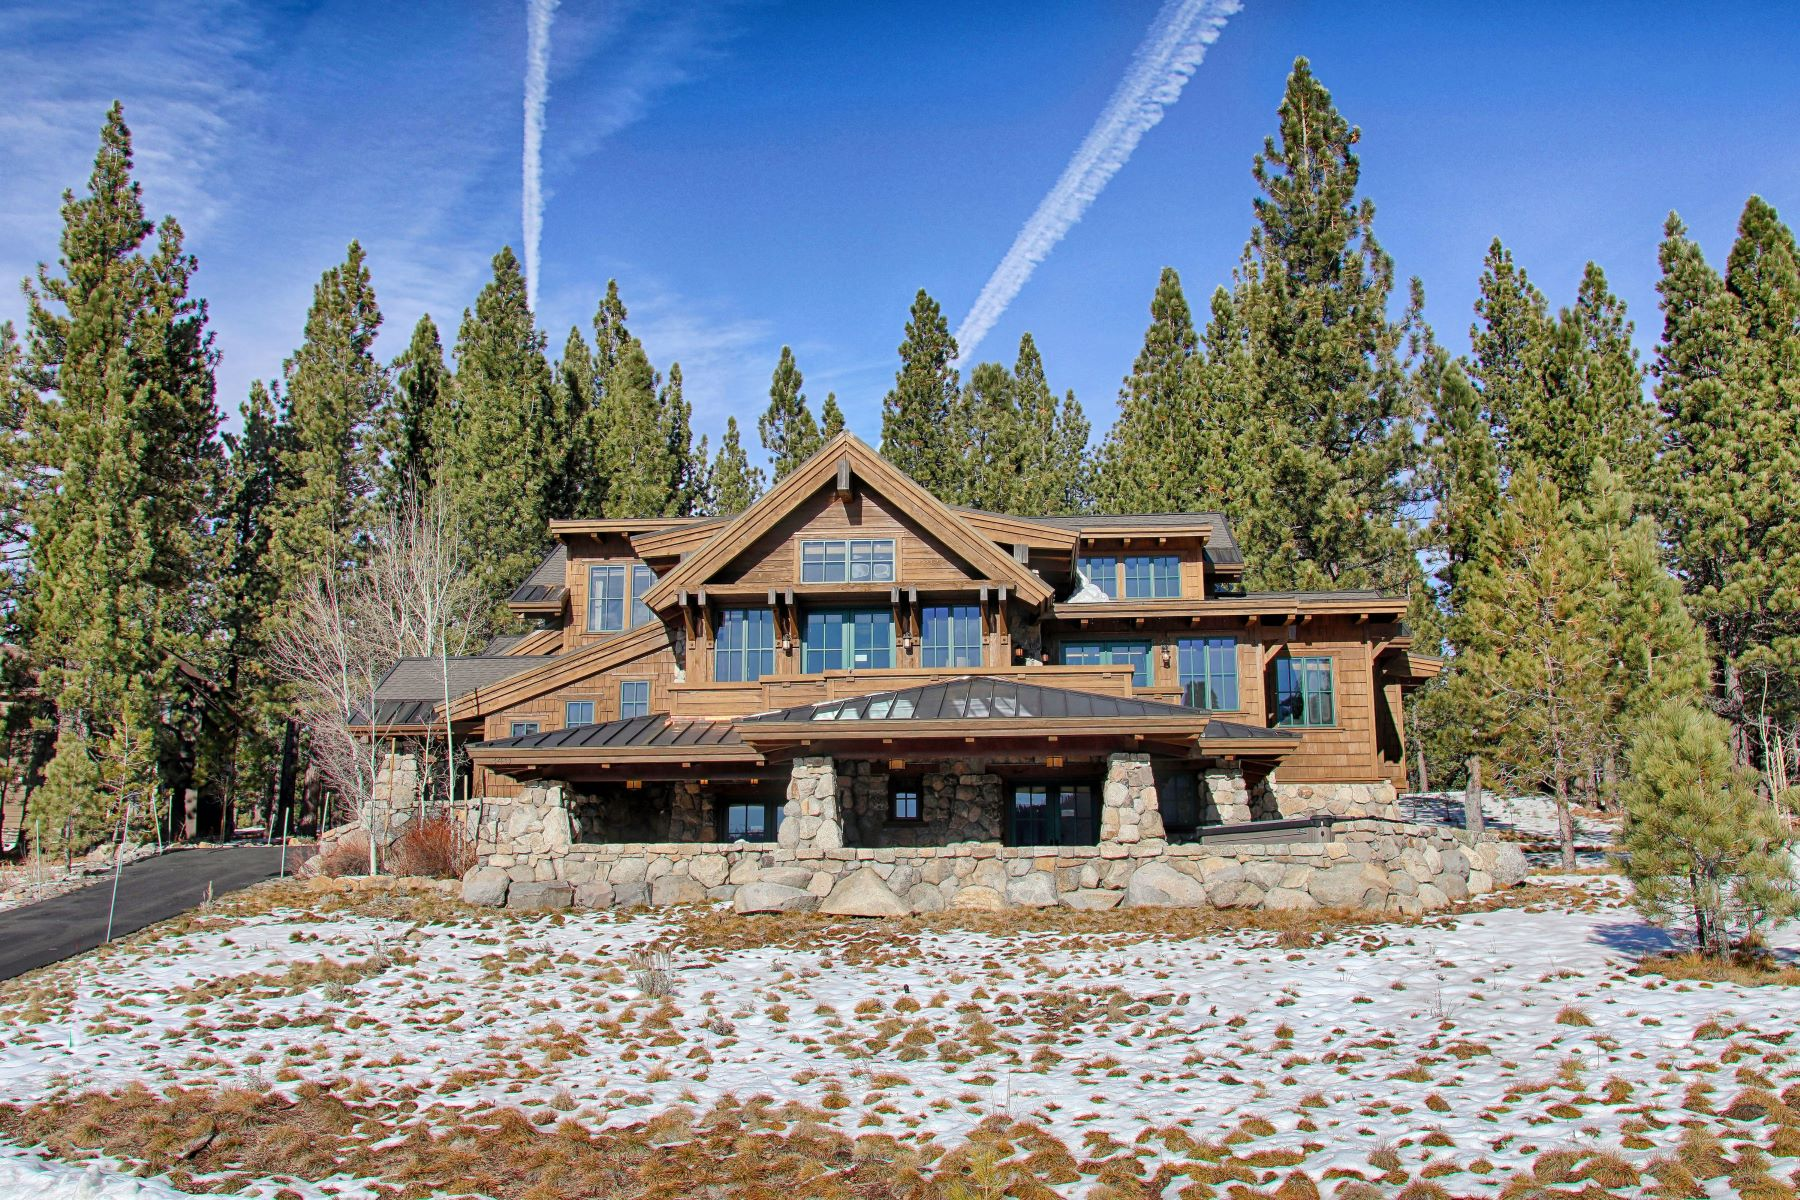 Property for Active at 340 Elias Baldwin, Truckee, California 96161 340 Elias Baldwin Truckee, California 96161 United States